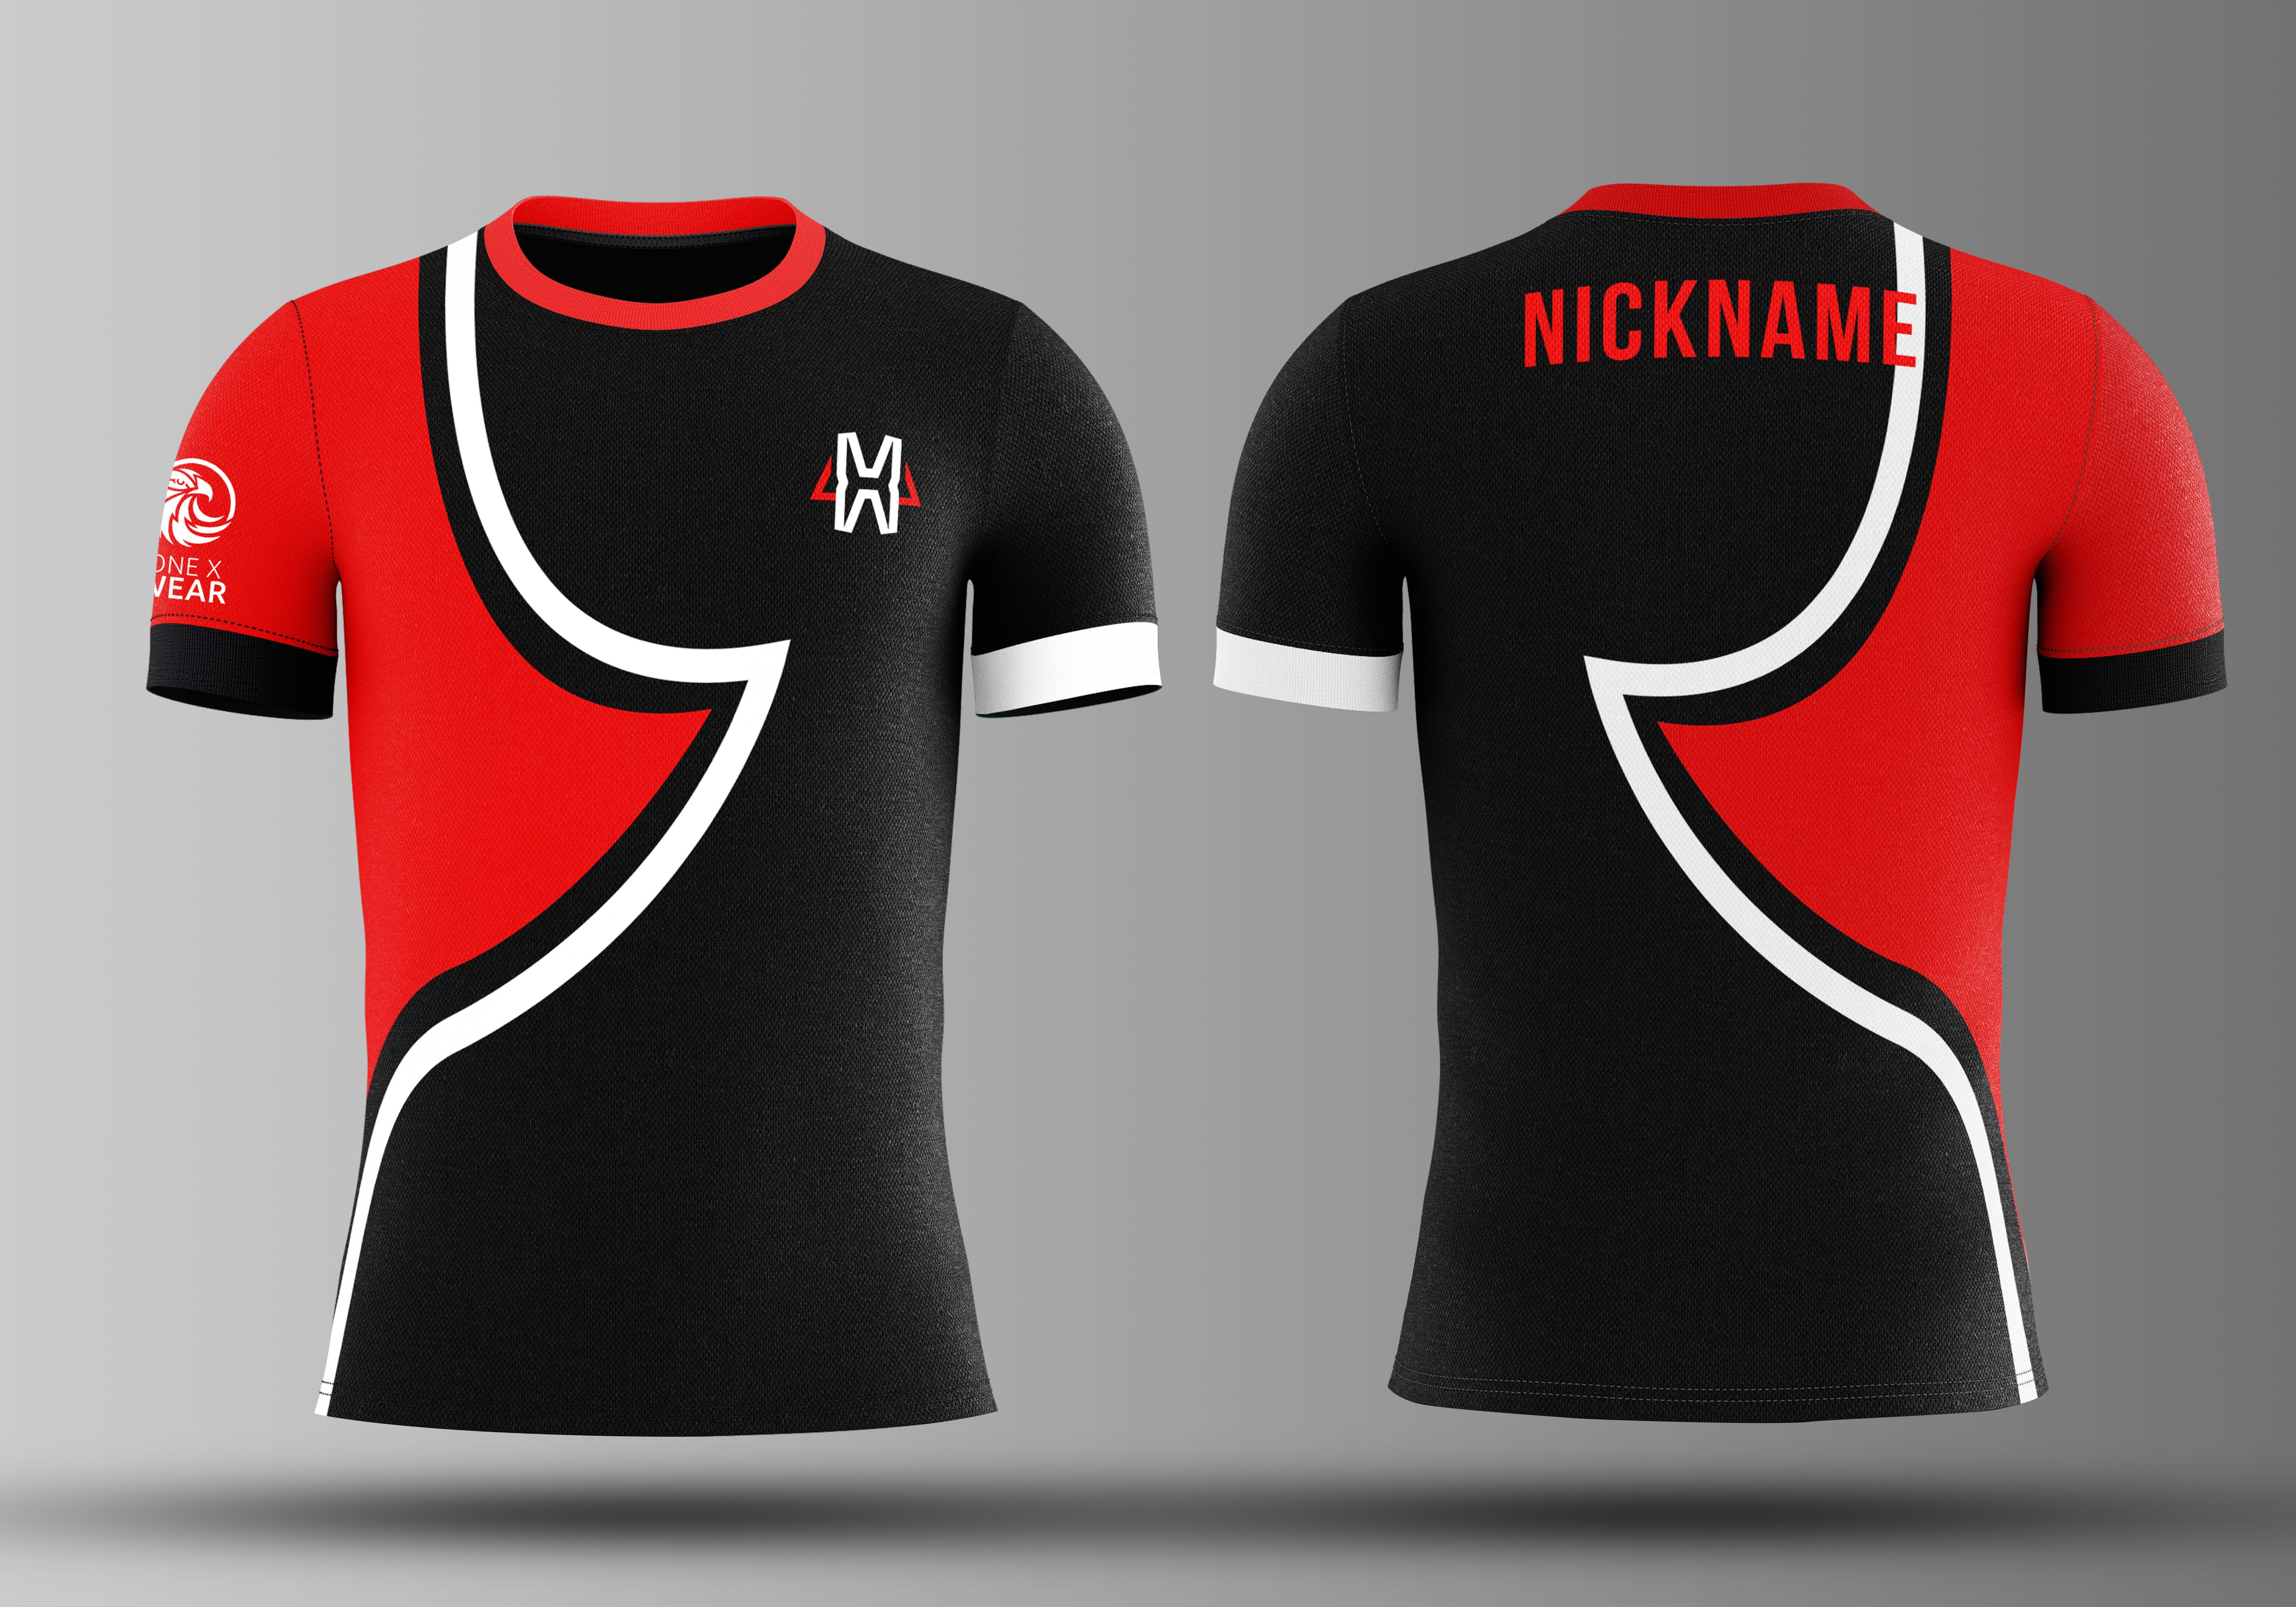 Download Under21 I Will Design Jersey For Esports Soccer Etc In 24 Hours For 10 On Fiverr Com Sport T Shirt Sleeves Clothing Shirt Template